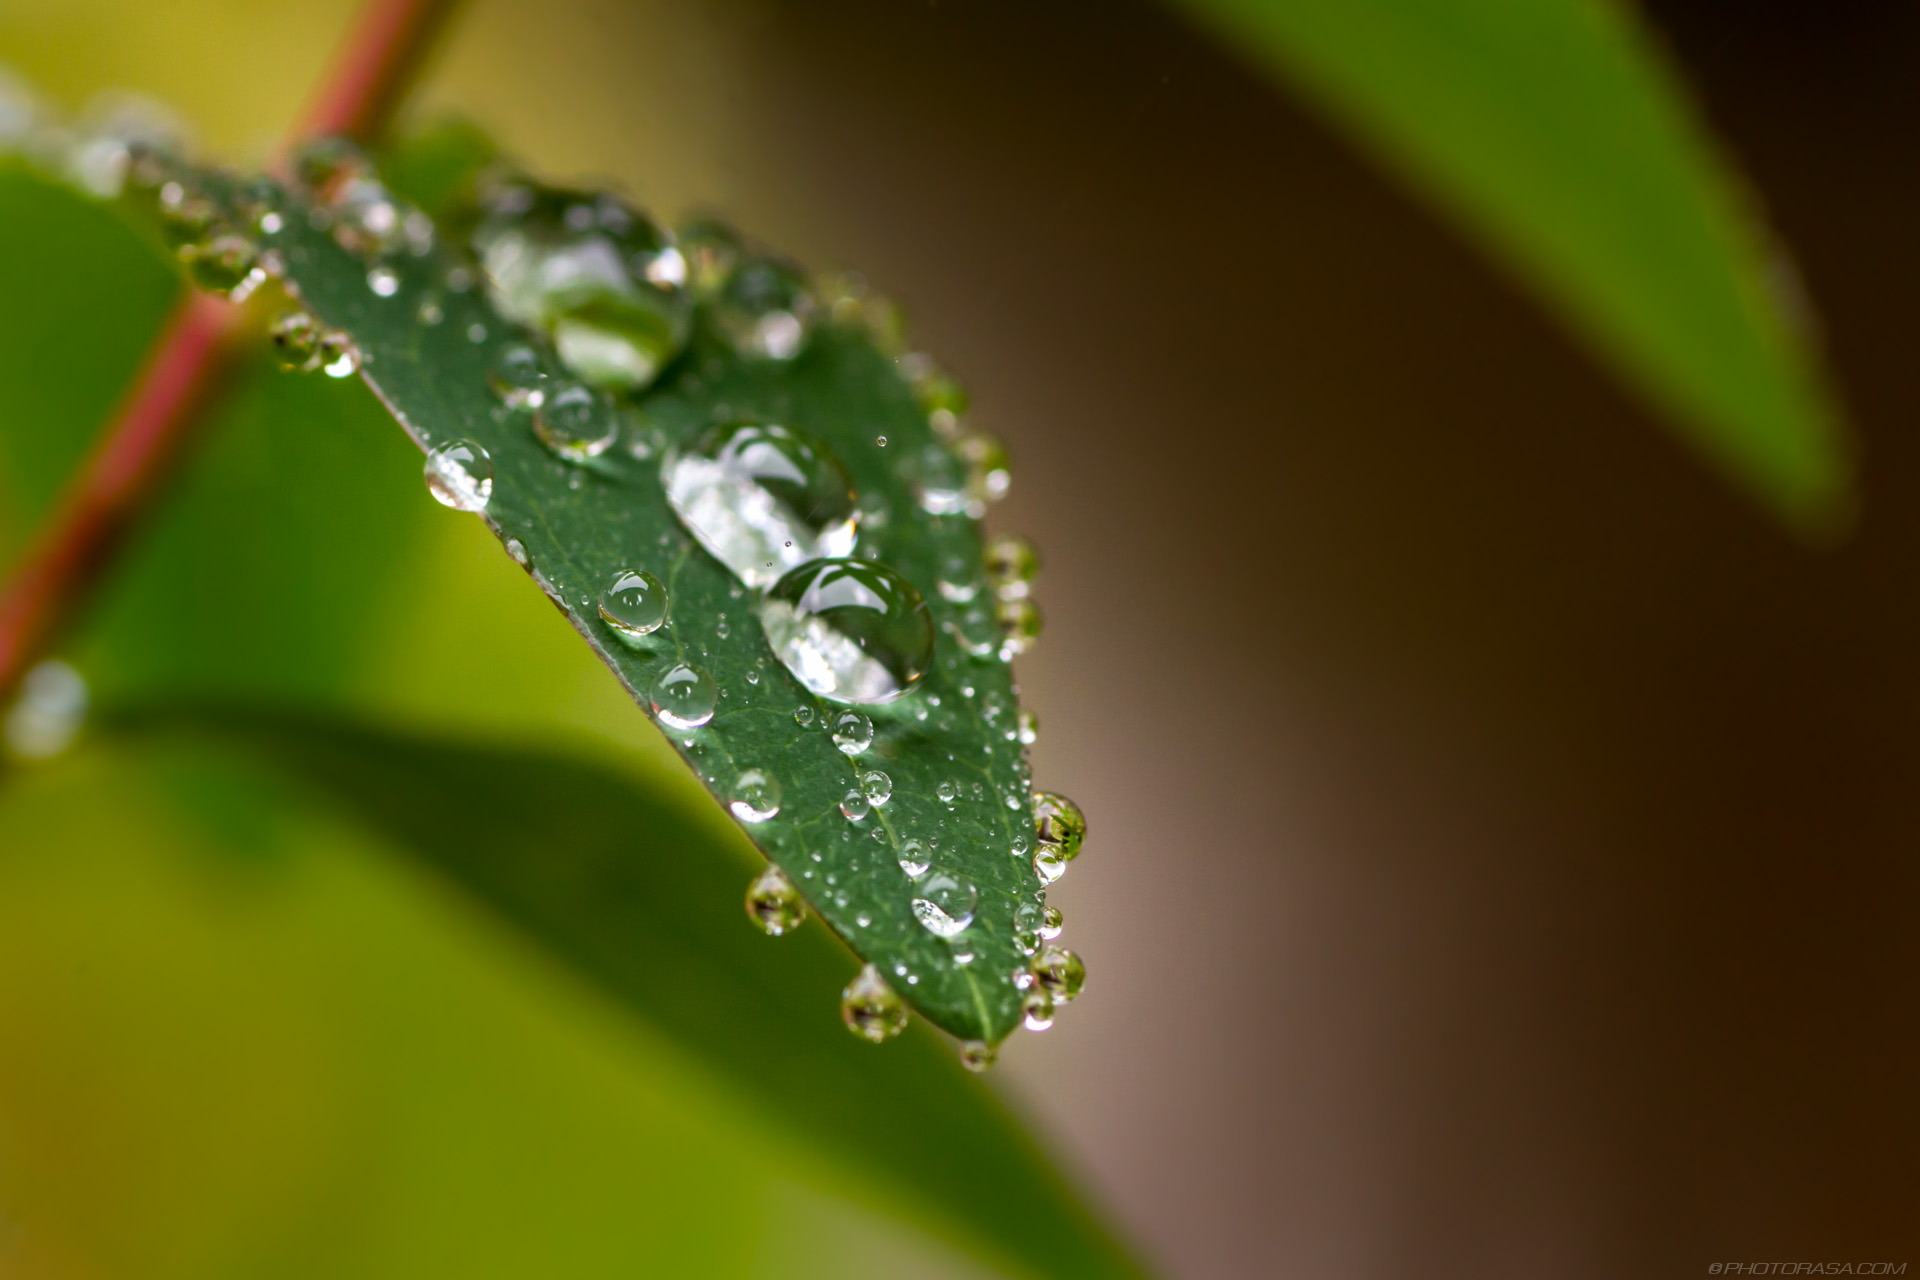 https://photorasa.com/dewdrops-tiny-leaves/dewdrops-about-to-dribble-off-leaf/